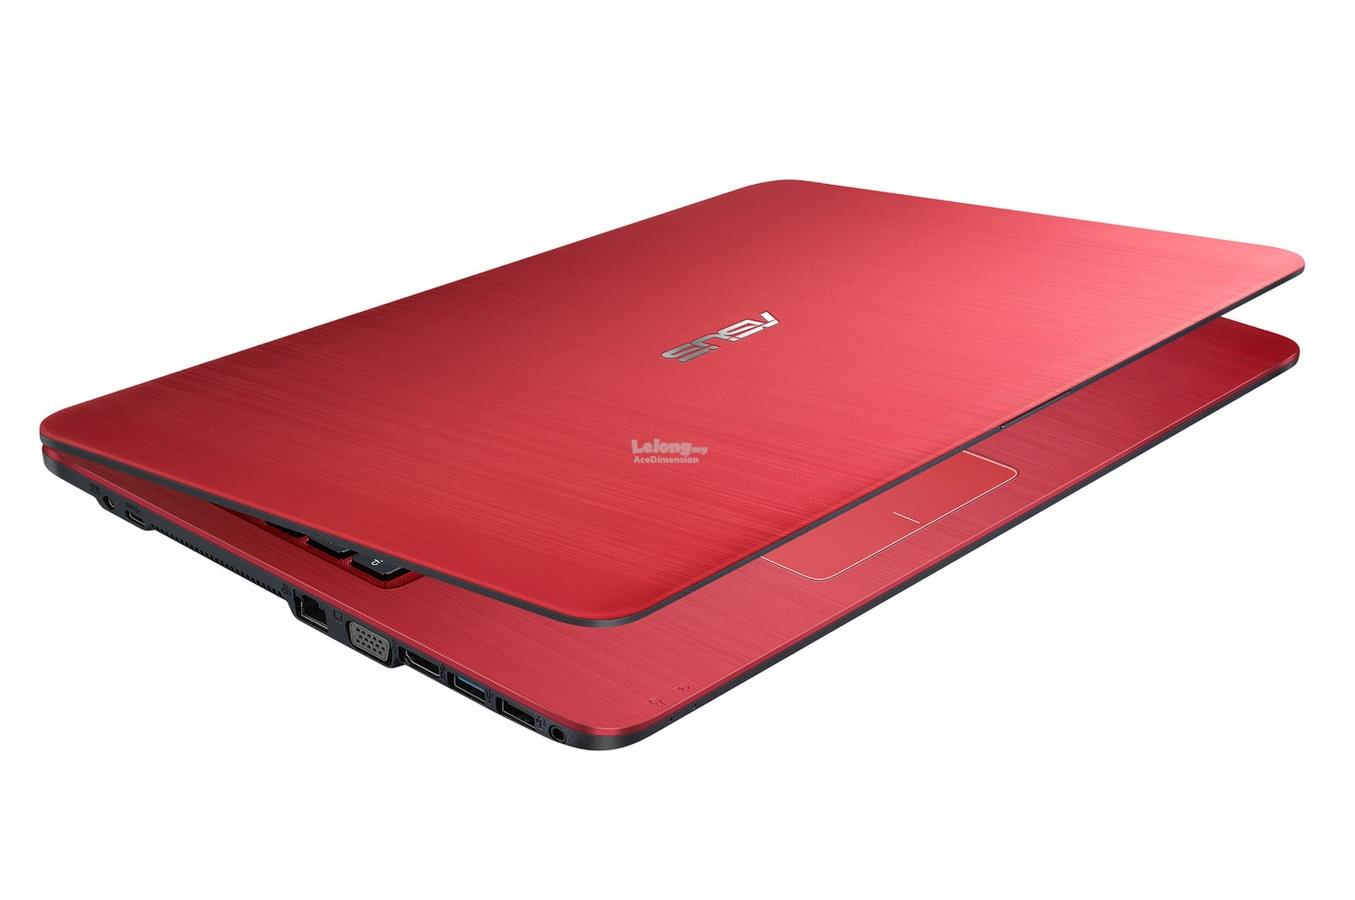 [05-Mar] Asus Vivobook X441N-AGA278T Notebook *Red*